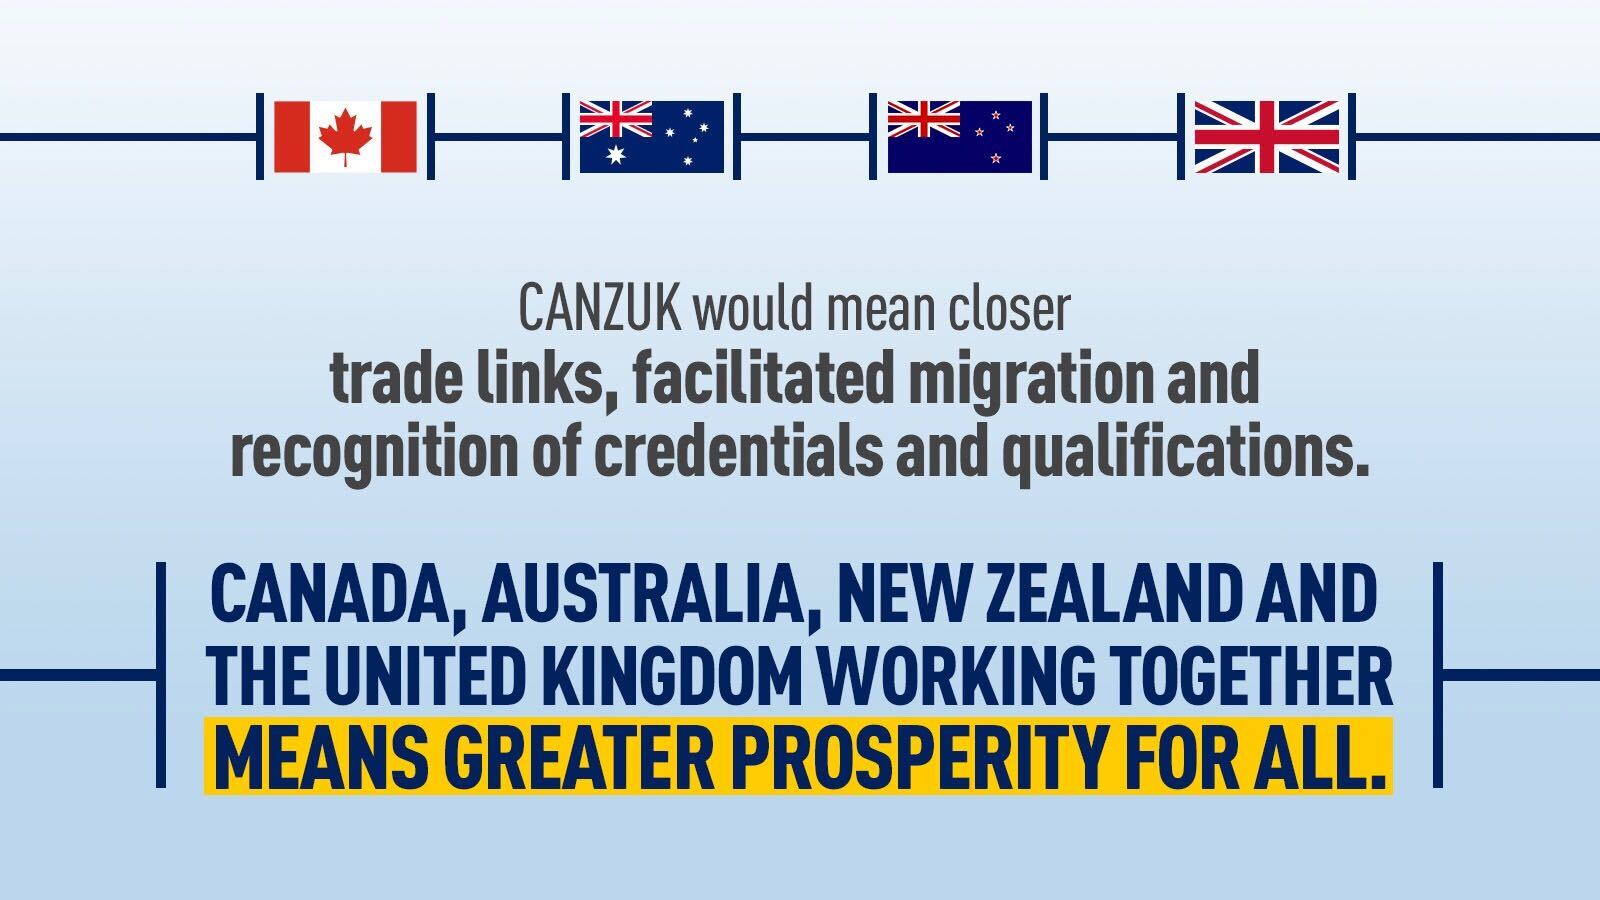 Working to make CANZUK a reality